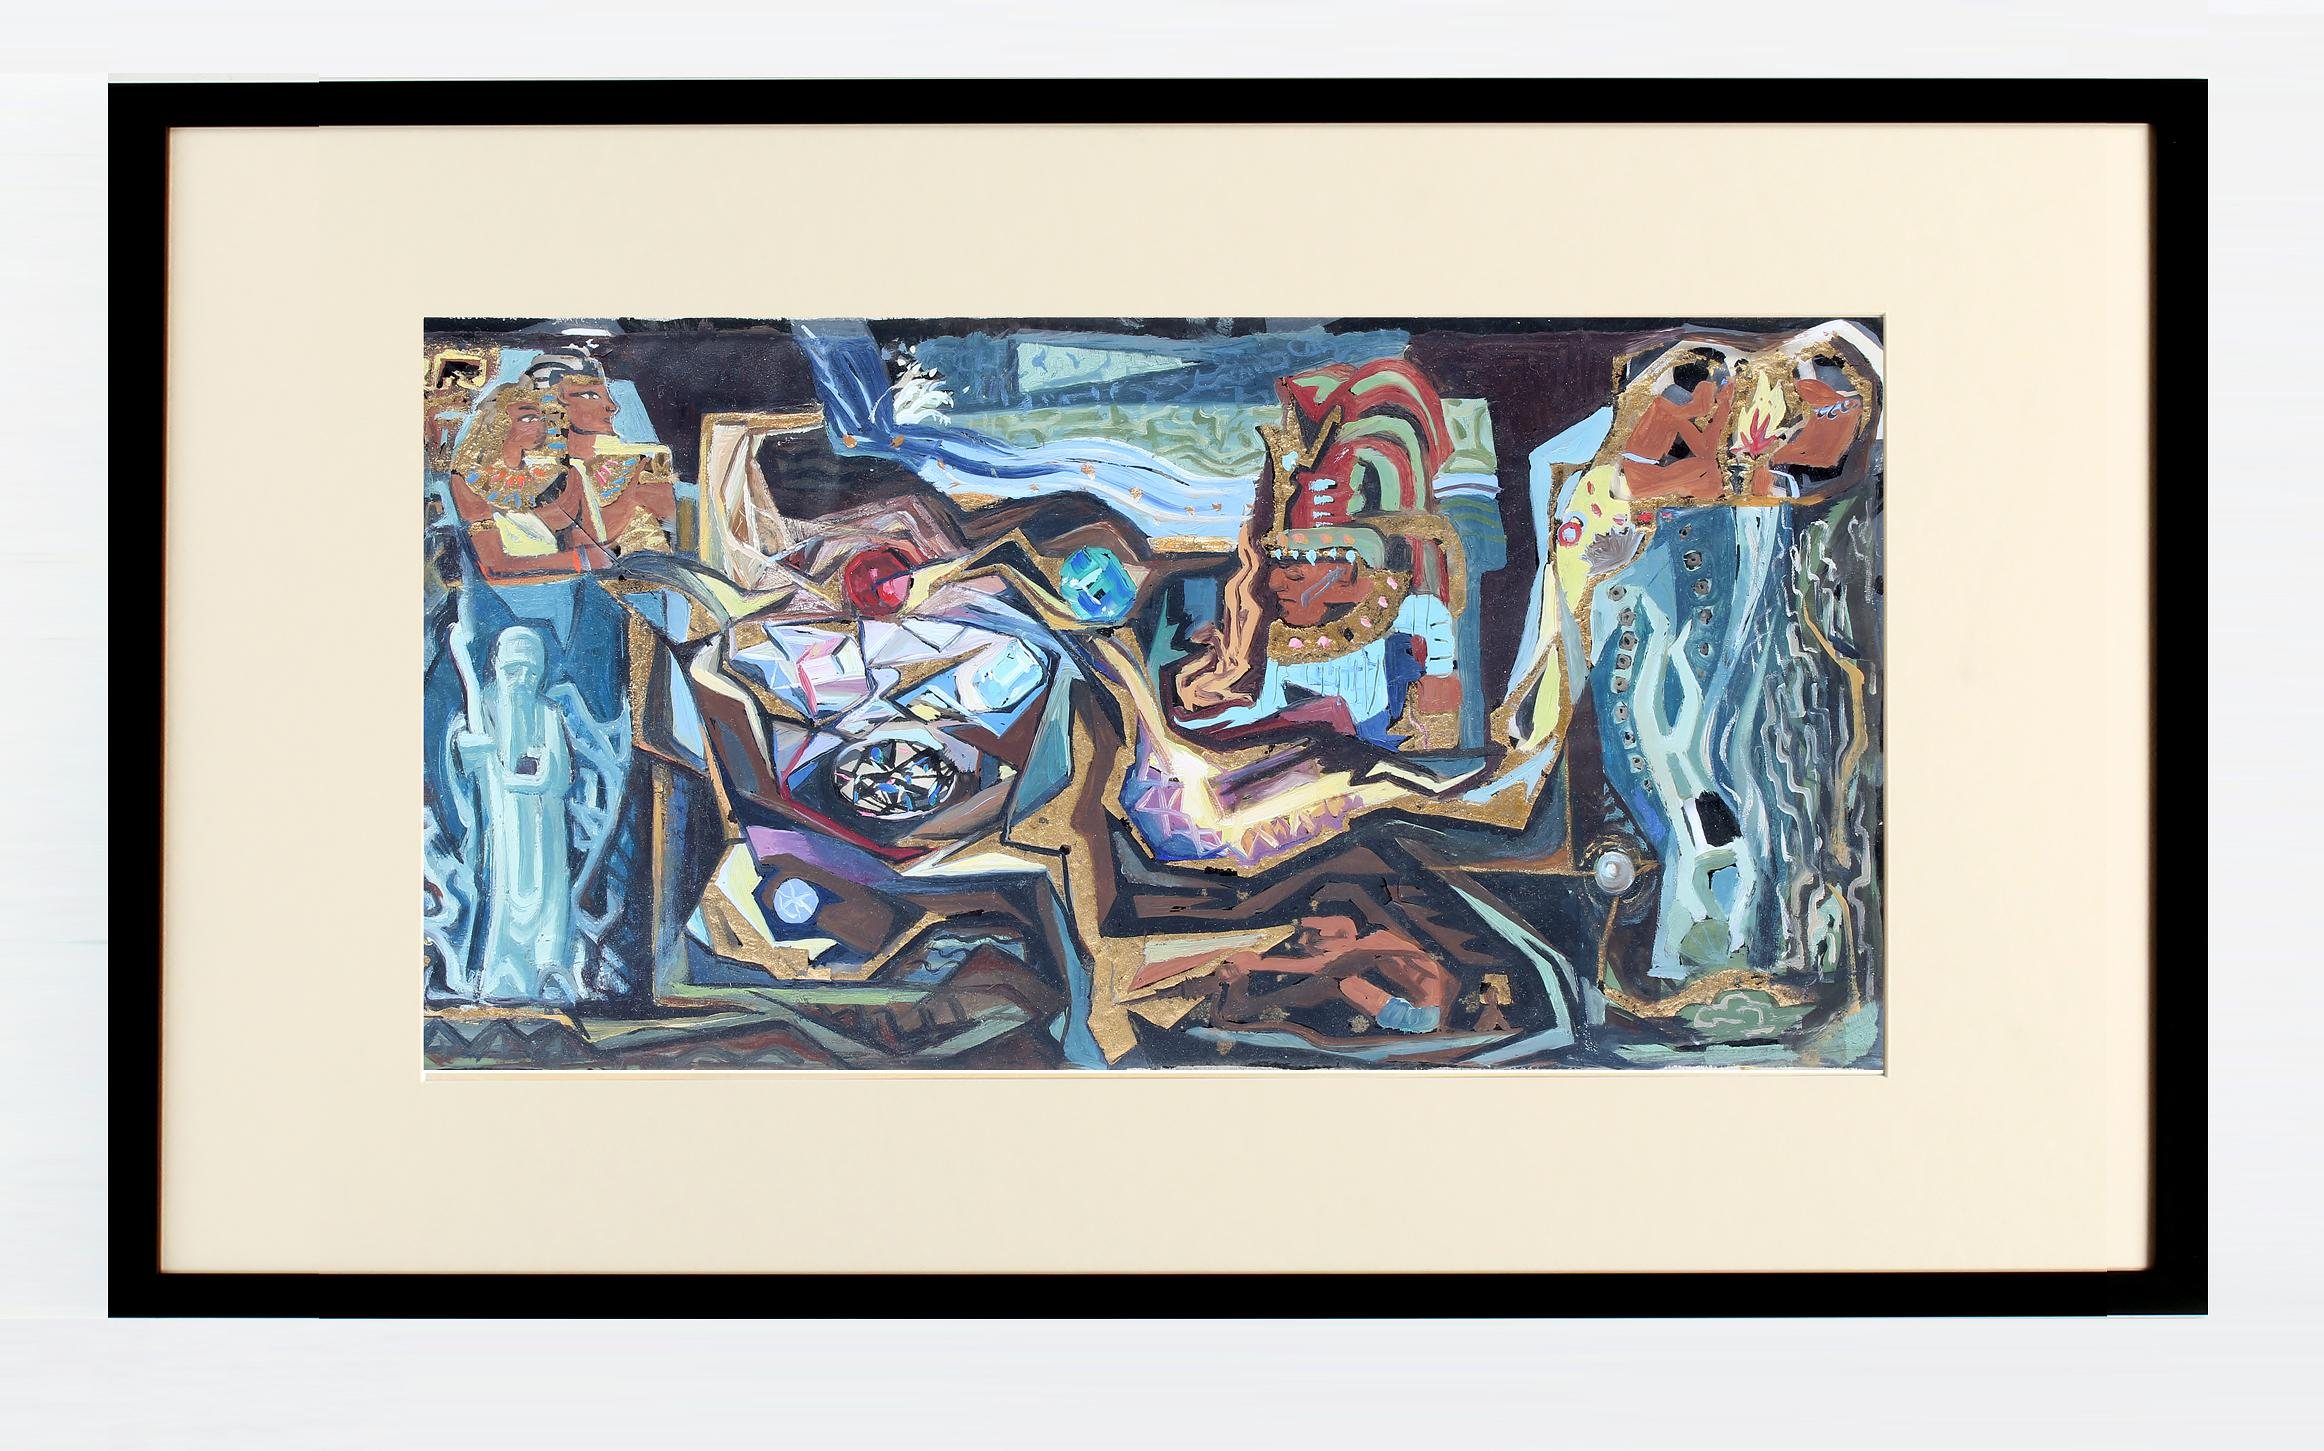 John Hatch American Cubist Abstract Oil Painting 1950's Mid C Egyptian Mural